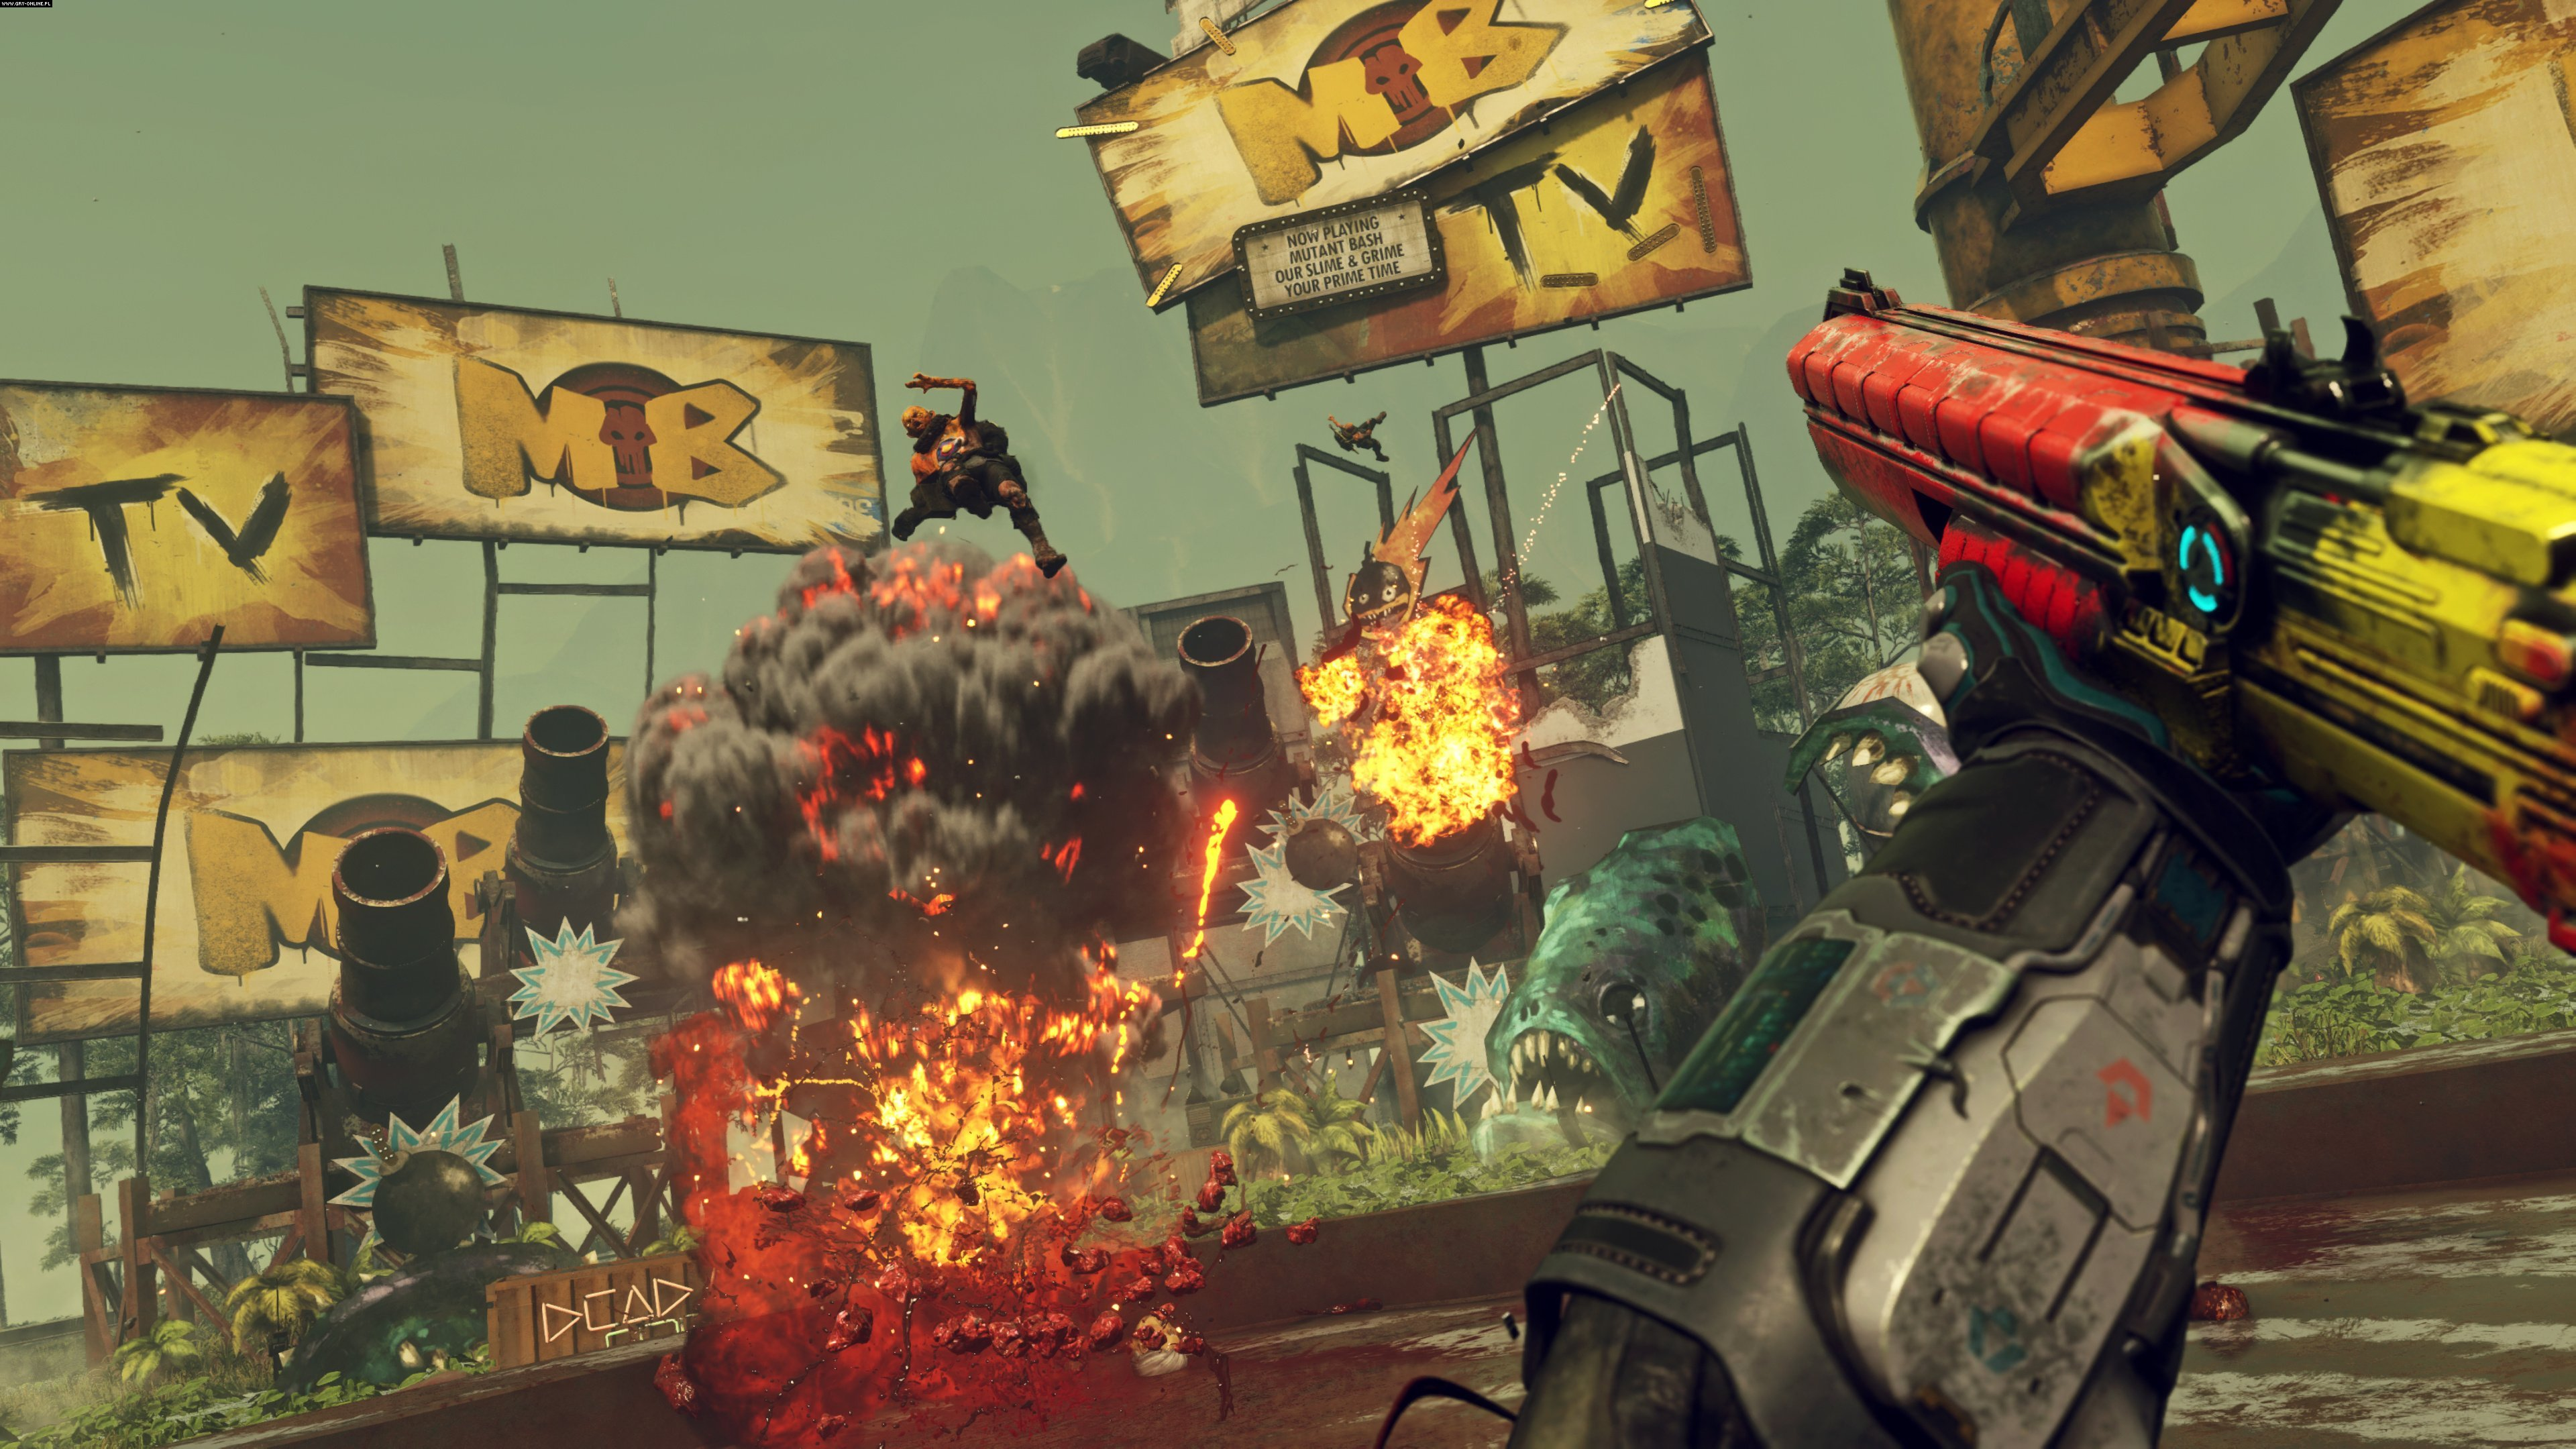 RAGE 2 PC, PS4, XONE Games Image 10/33, Avalanche Studios, Bethesda Softworks